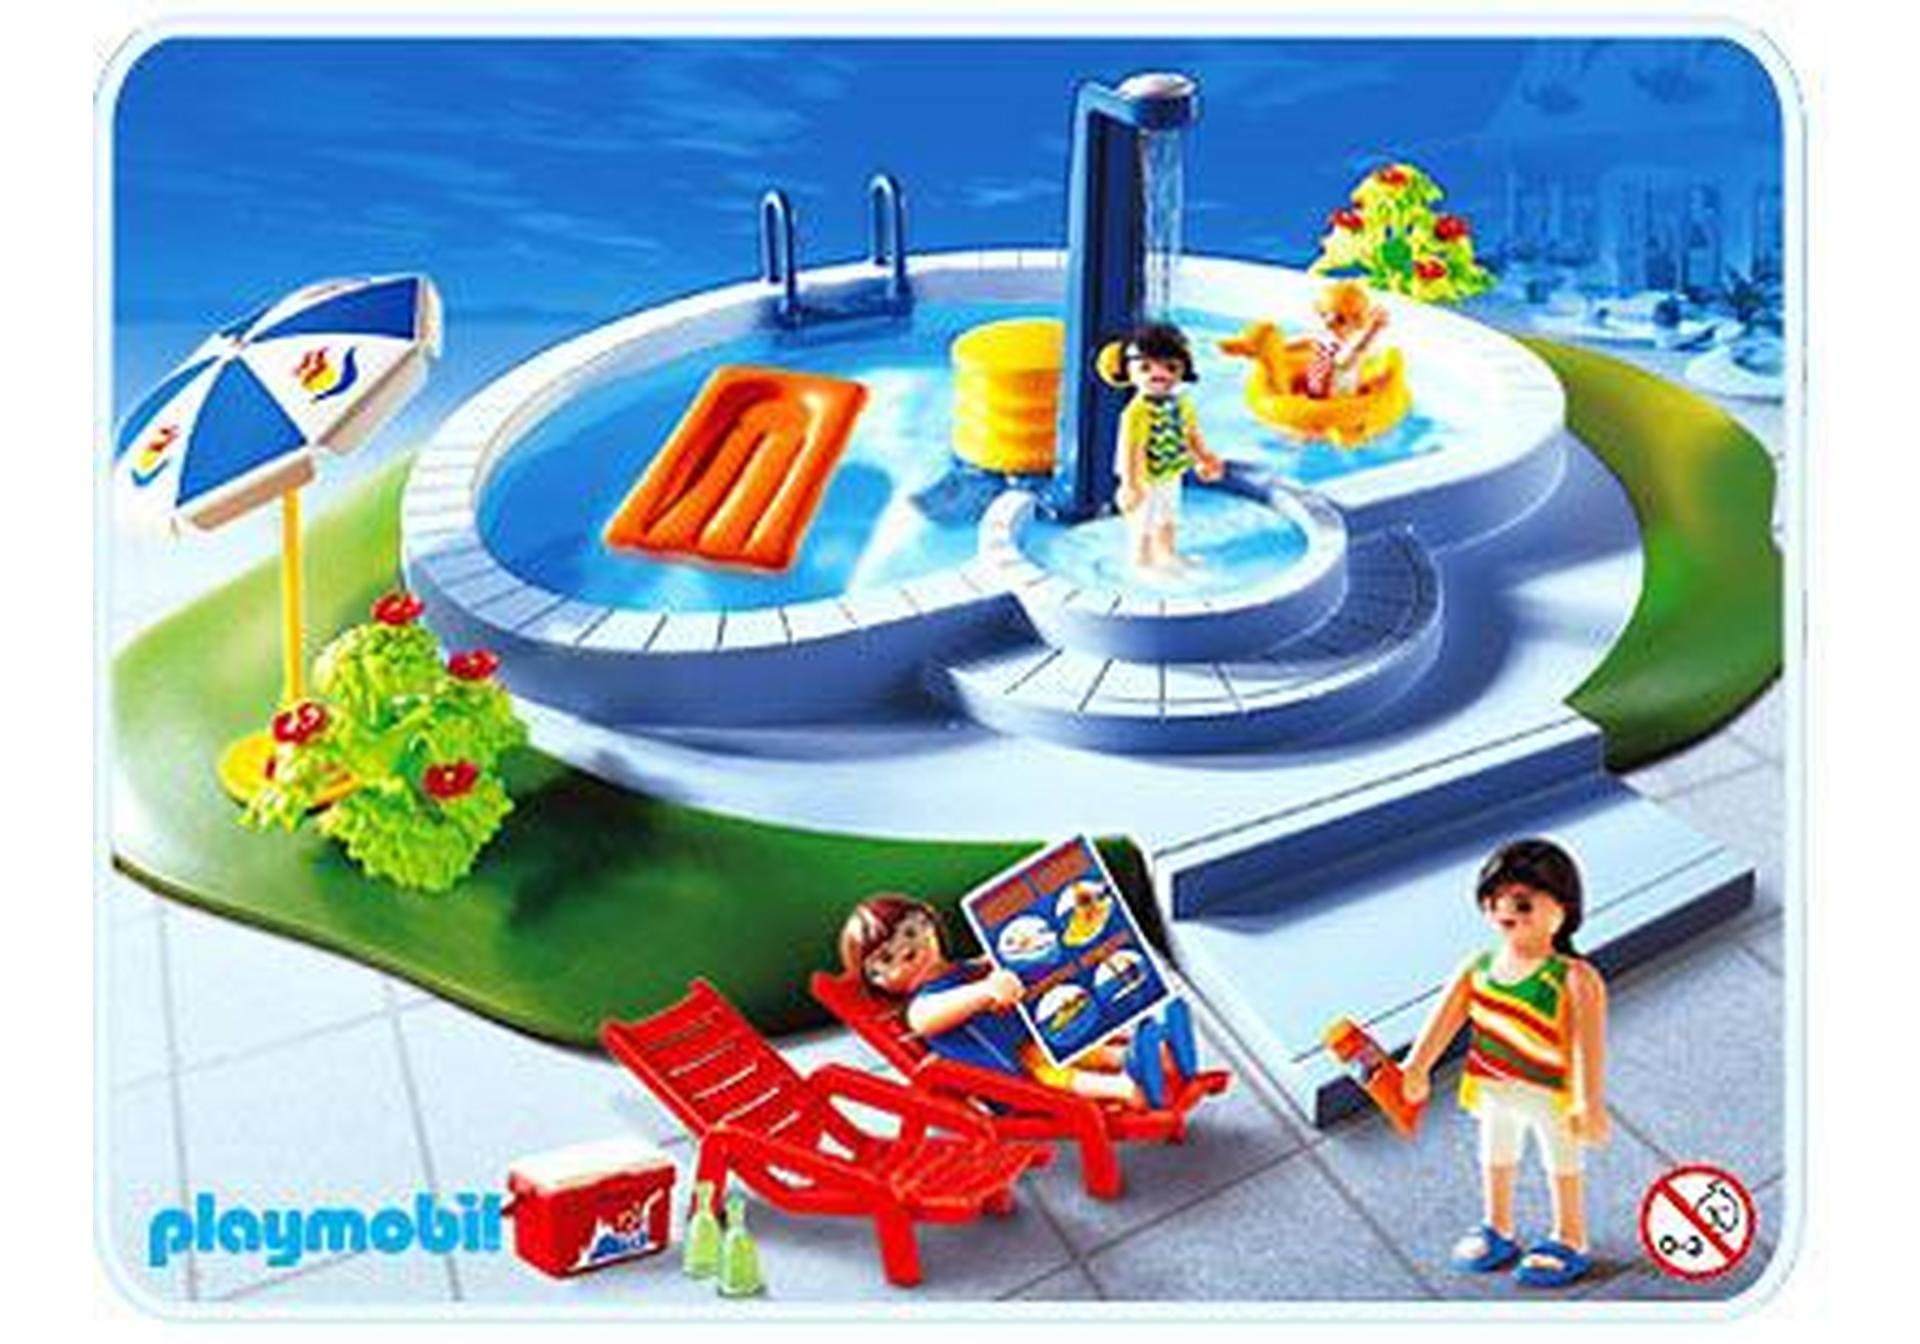 famille piscine 3205 b playmobil france